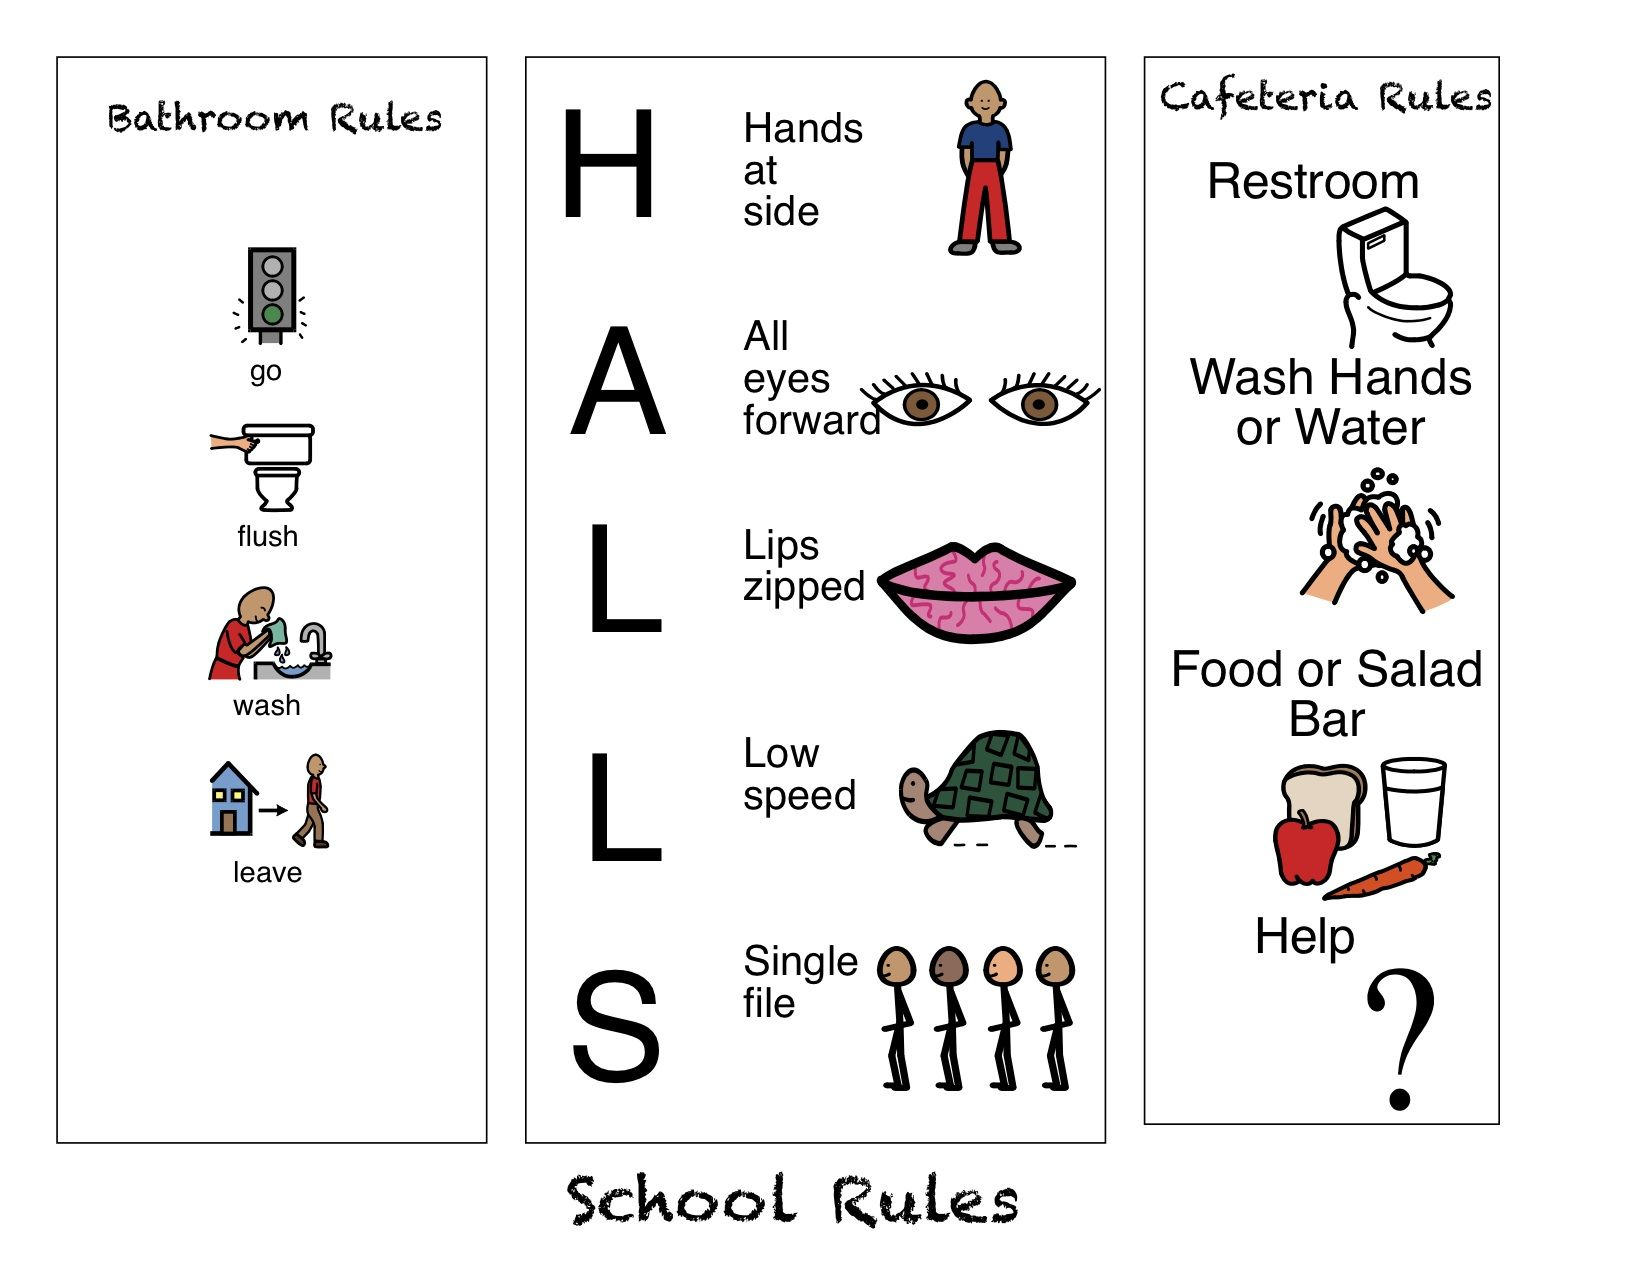 School Rules Visual For All Common Areas